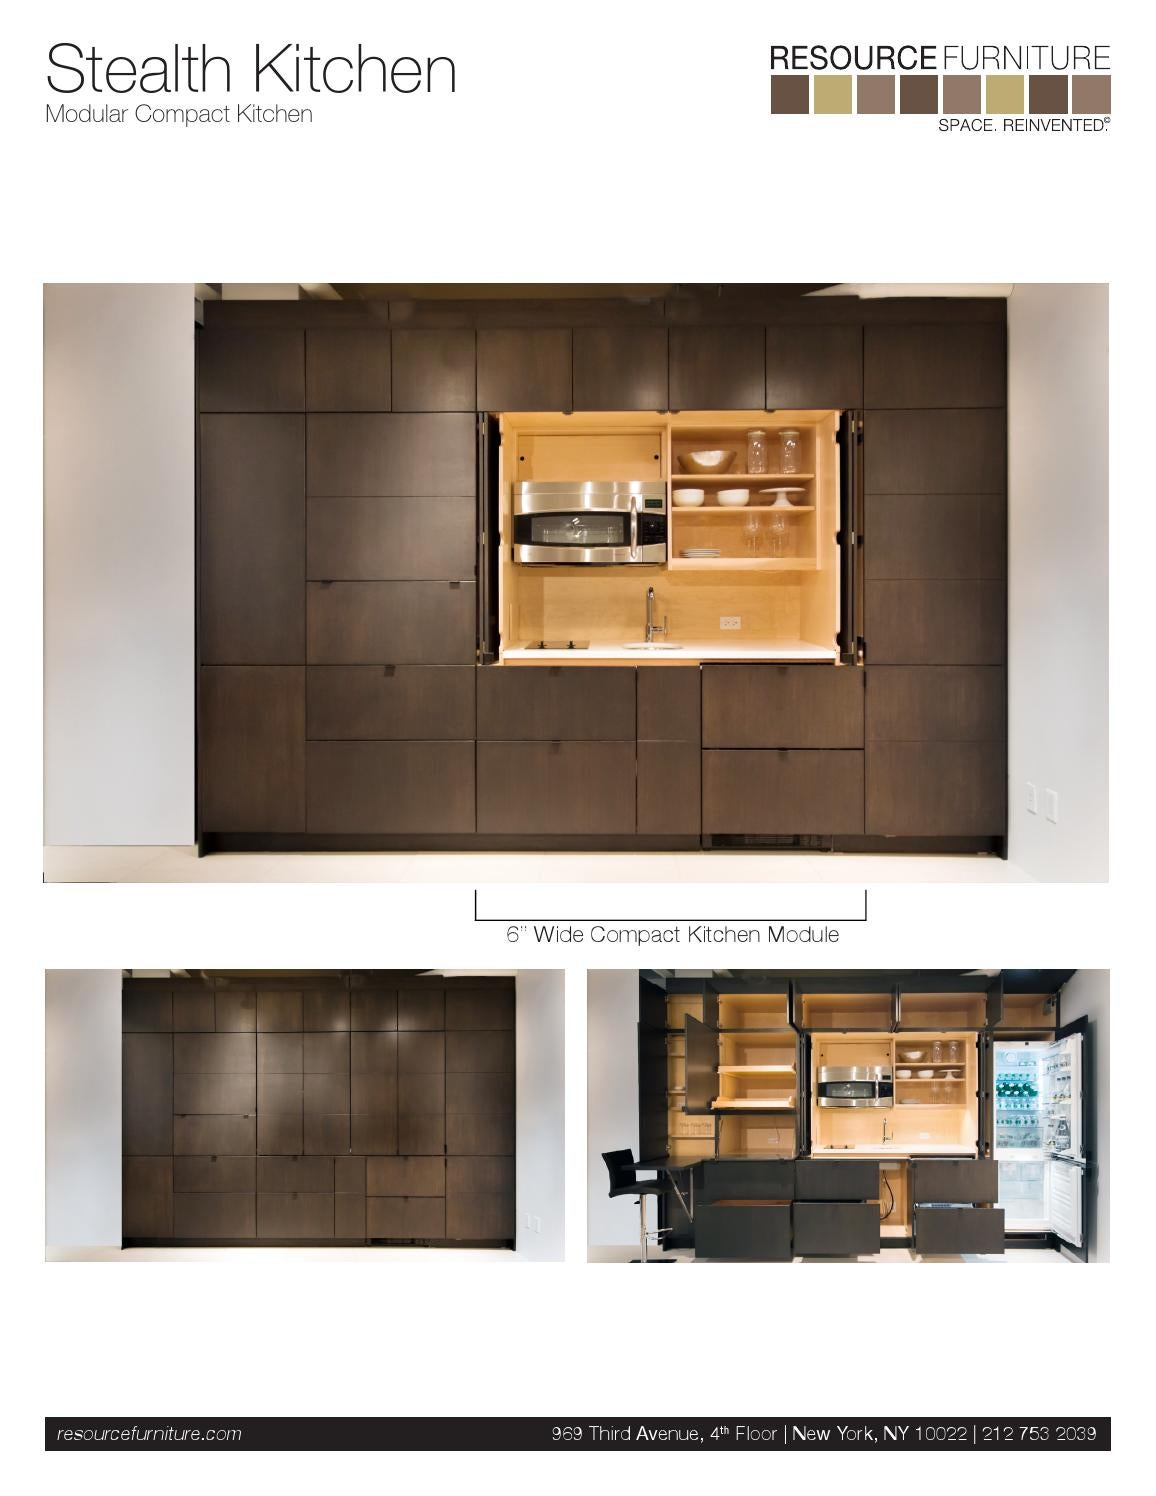 Stealth Kitchen Specs And Dimensions Pdf 35729 By Resource Furniture Issuu